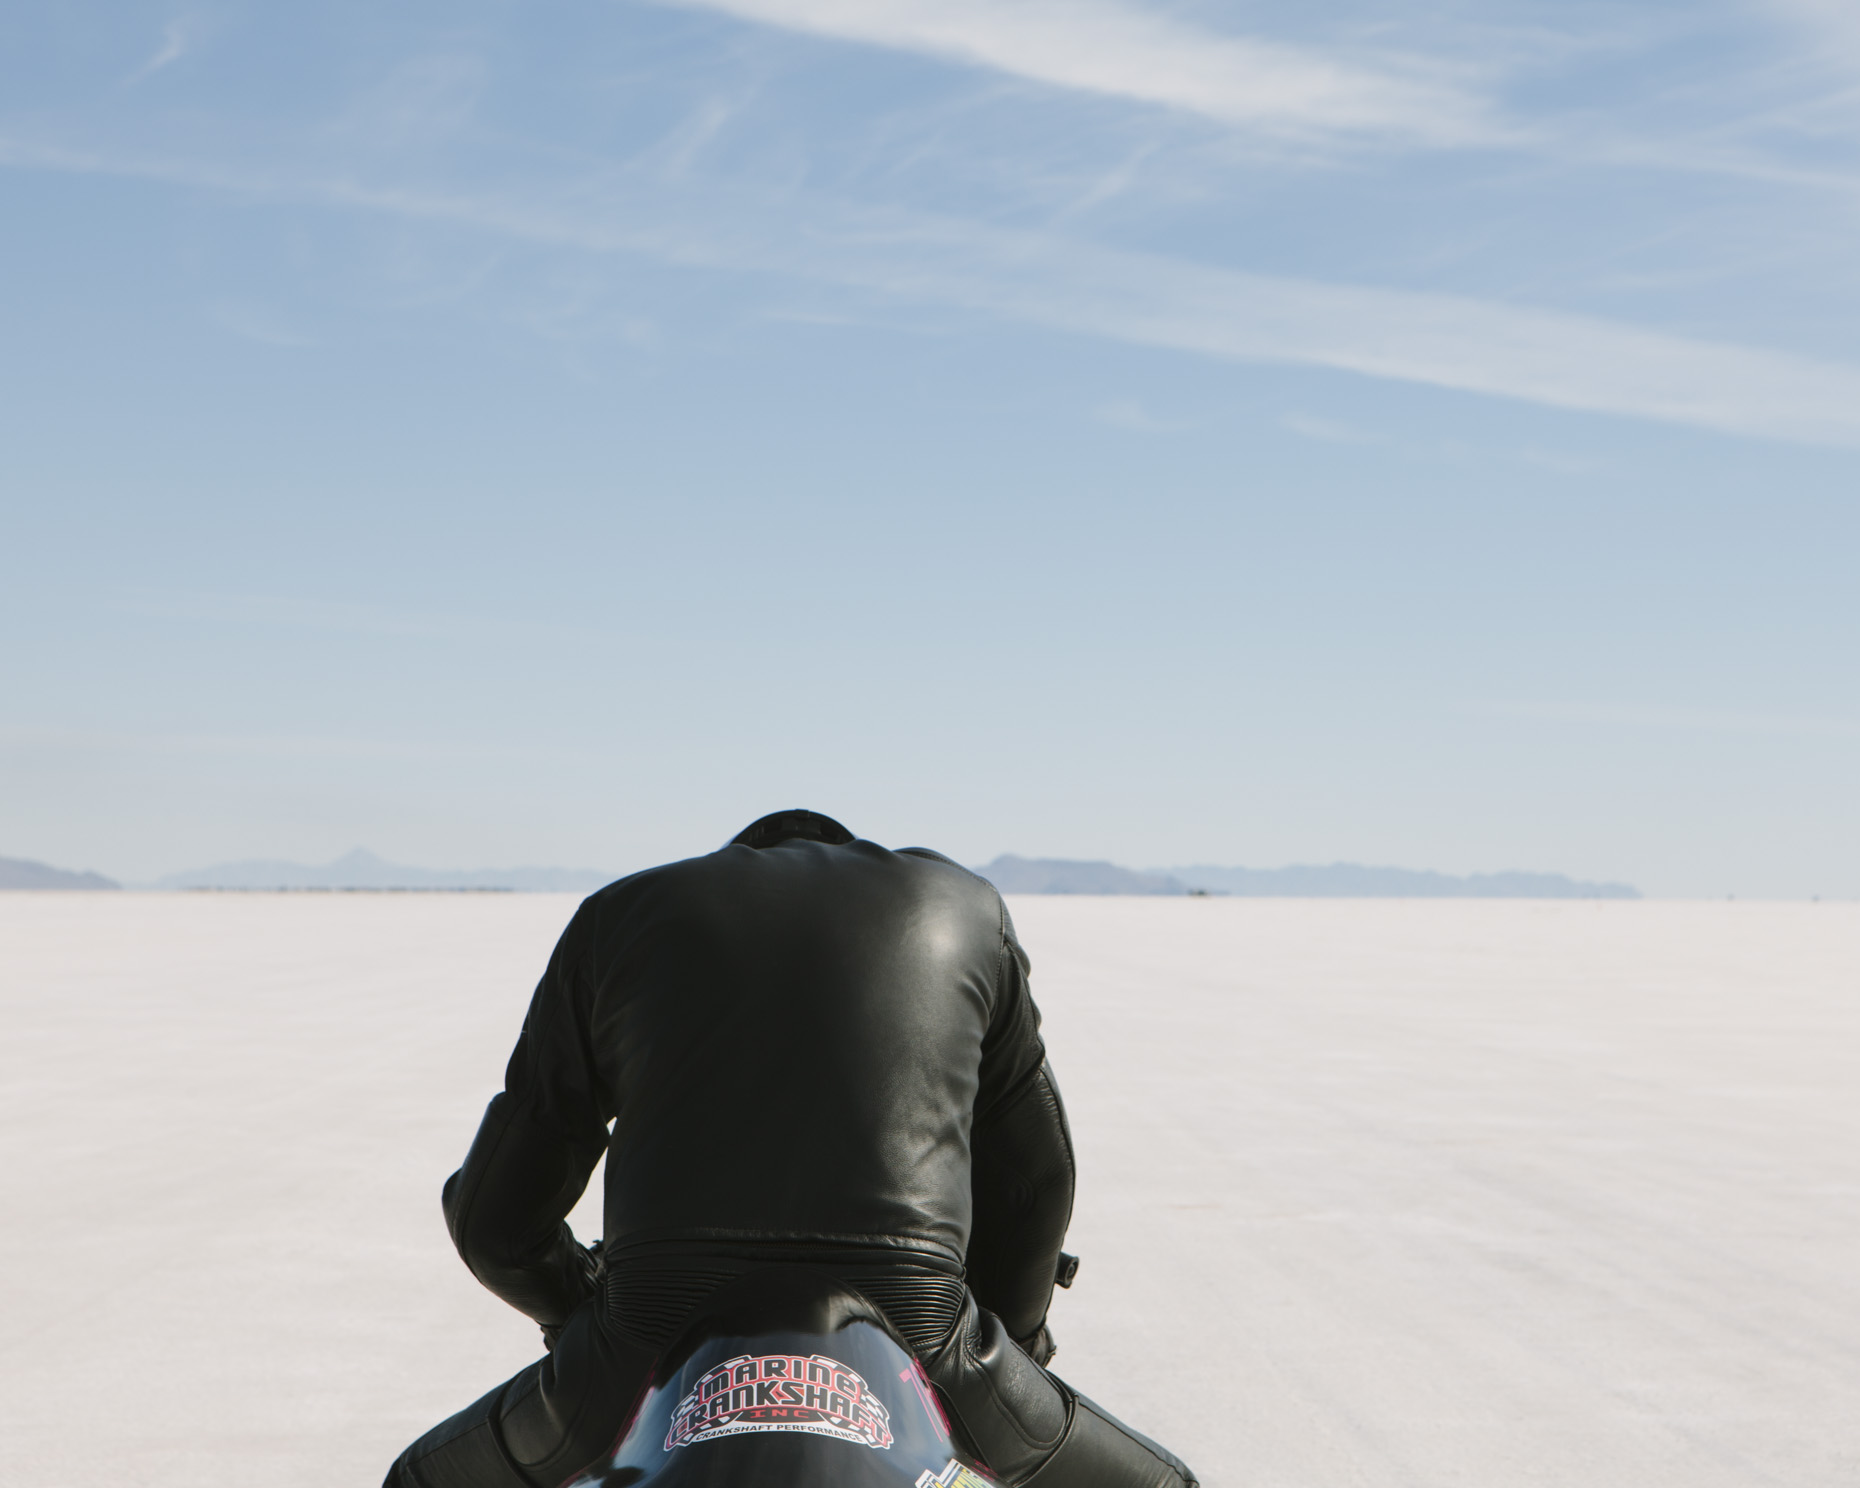 Motorcycle racer at start line, World of Speed, Bonneville Salt Flats, Utah - Paul Edmondson